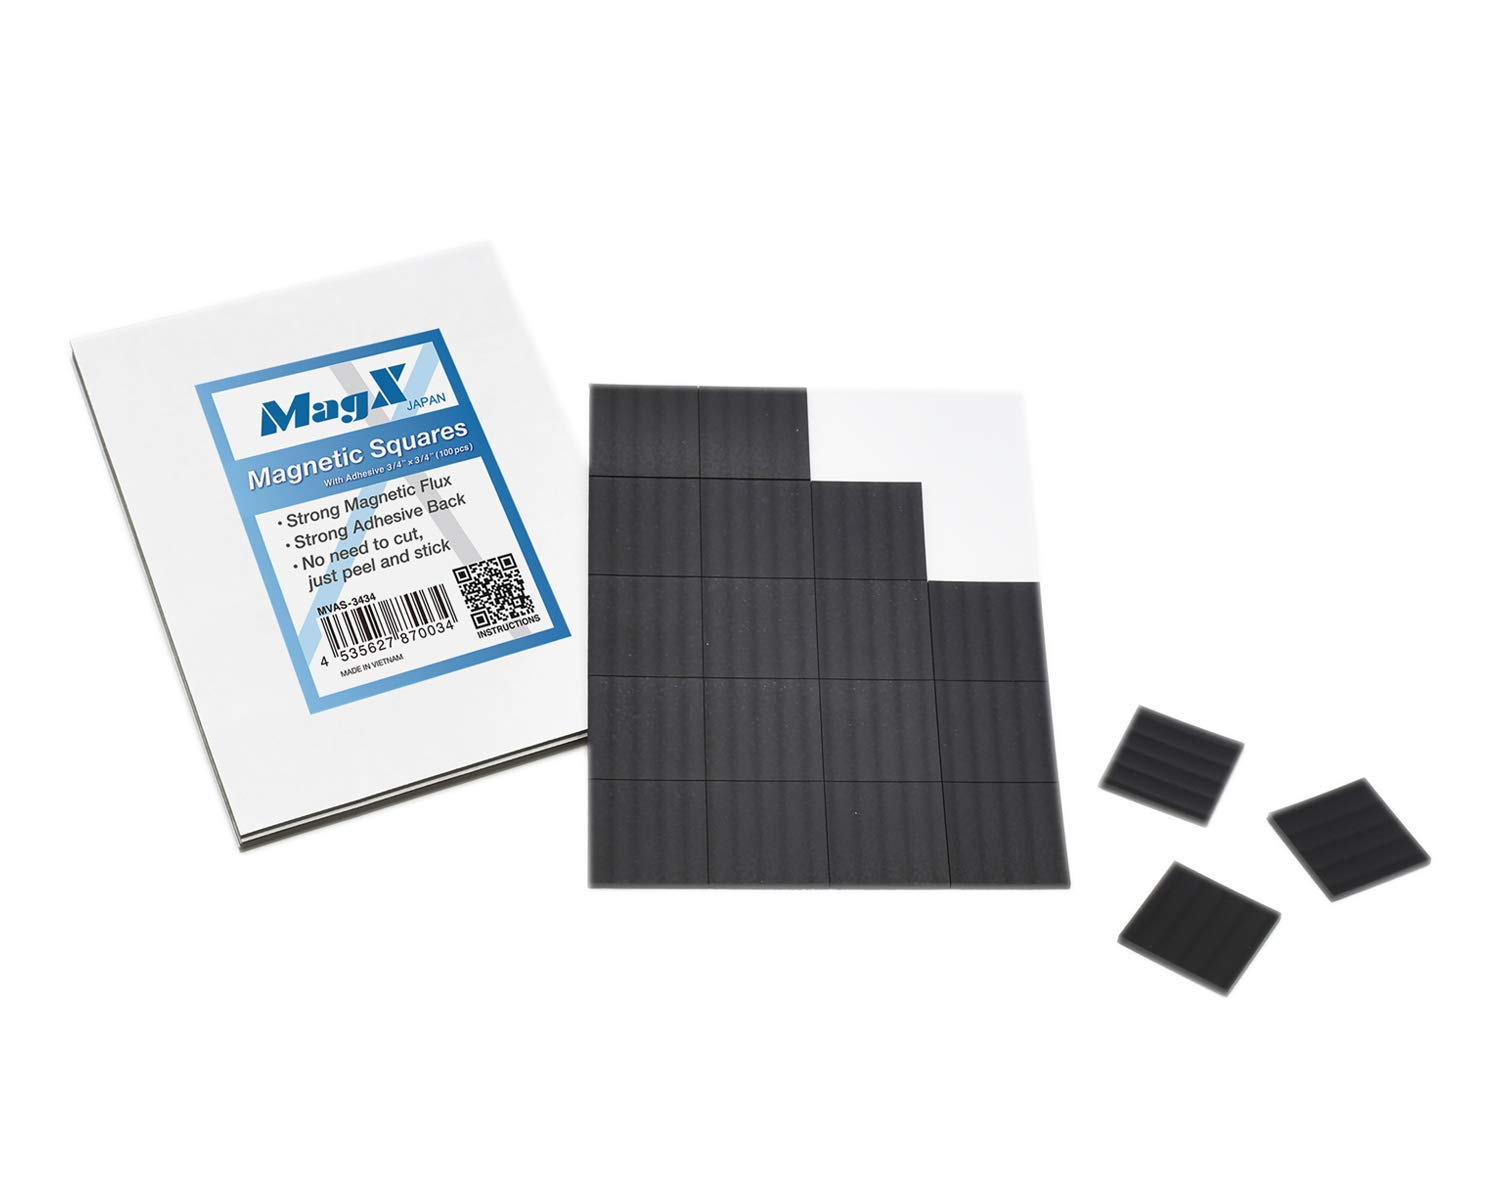 """MagX Magnetic Squares with Adhesive 3/4""""x3/4"""" (100 pcs), Ultra Thick 60 mil, Magnet Squares with Self Adhesive, Peel and Stick, Anisotropic Strong Magnets, Stationery, Office Supply"""